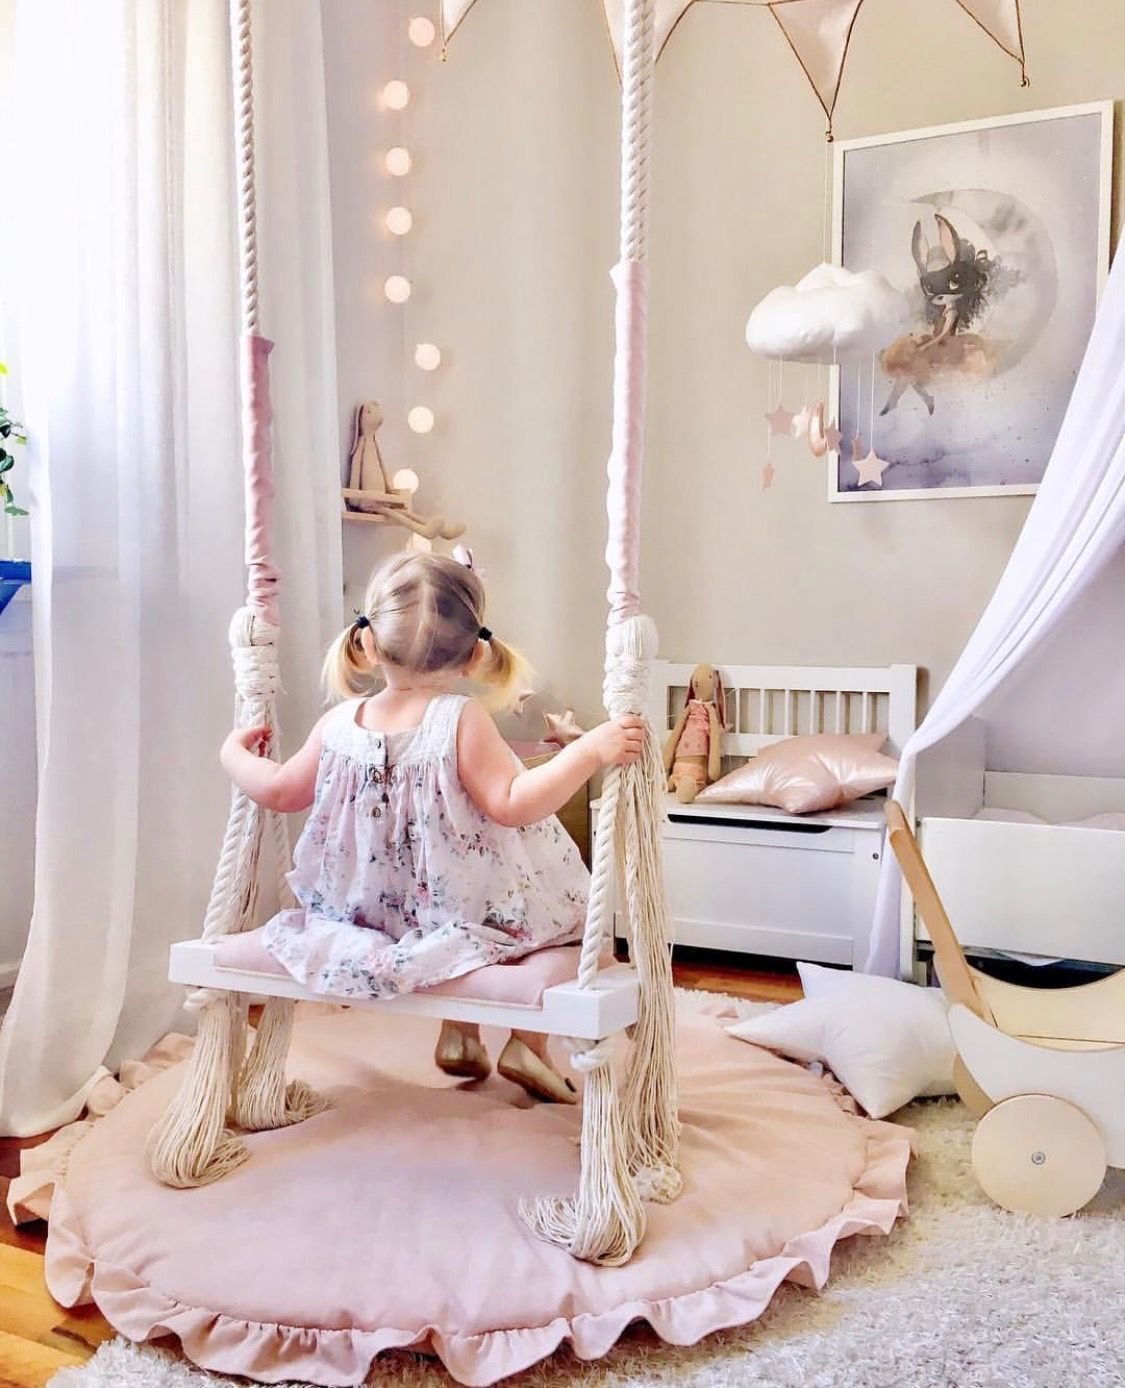 15 Outrageously Cool Swings For Your